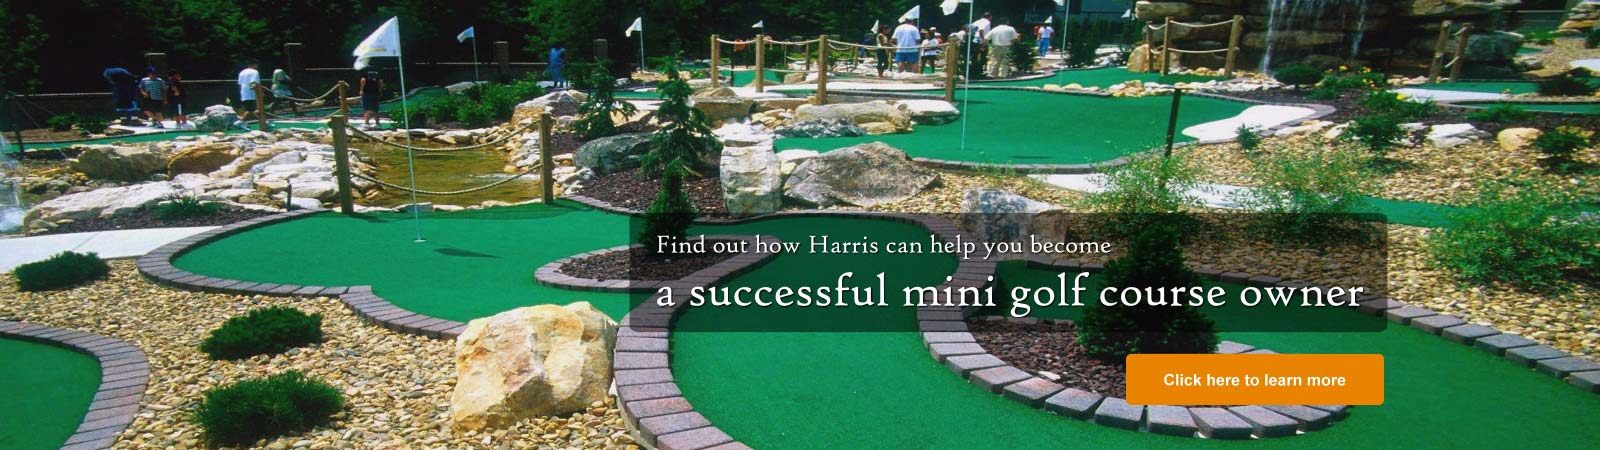 mini golf owner program md